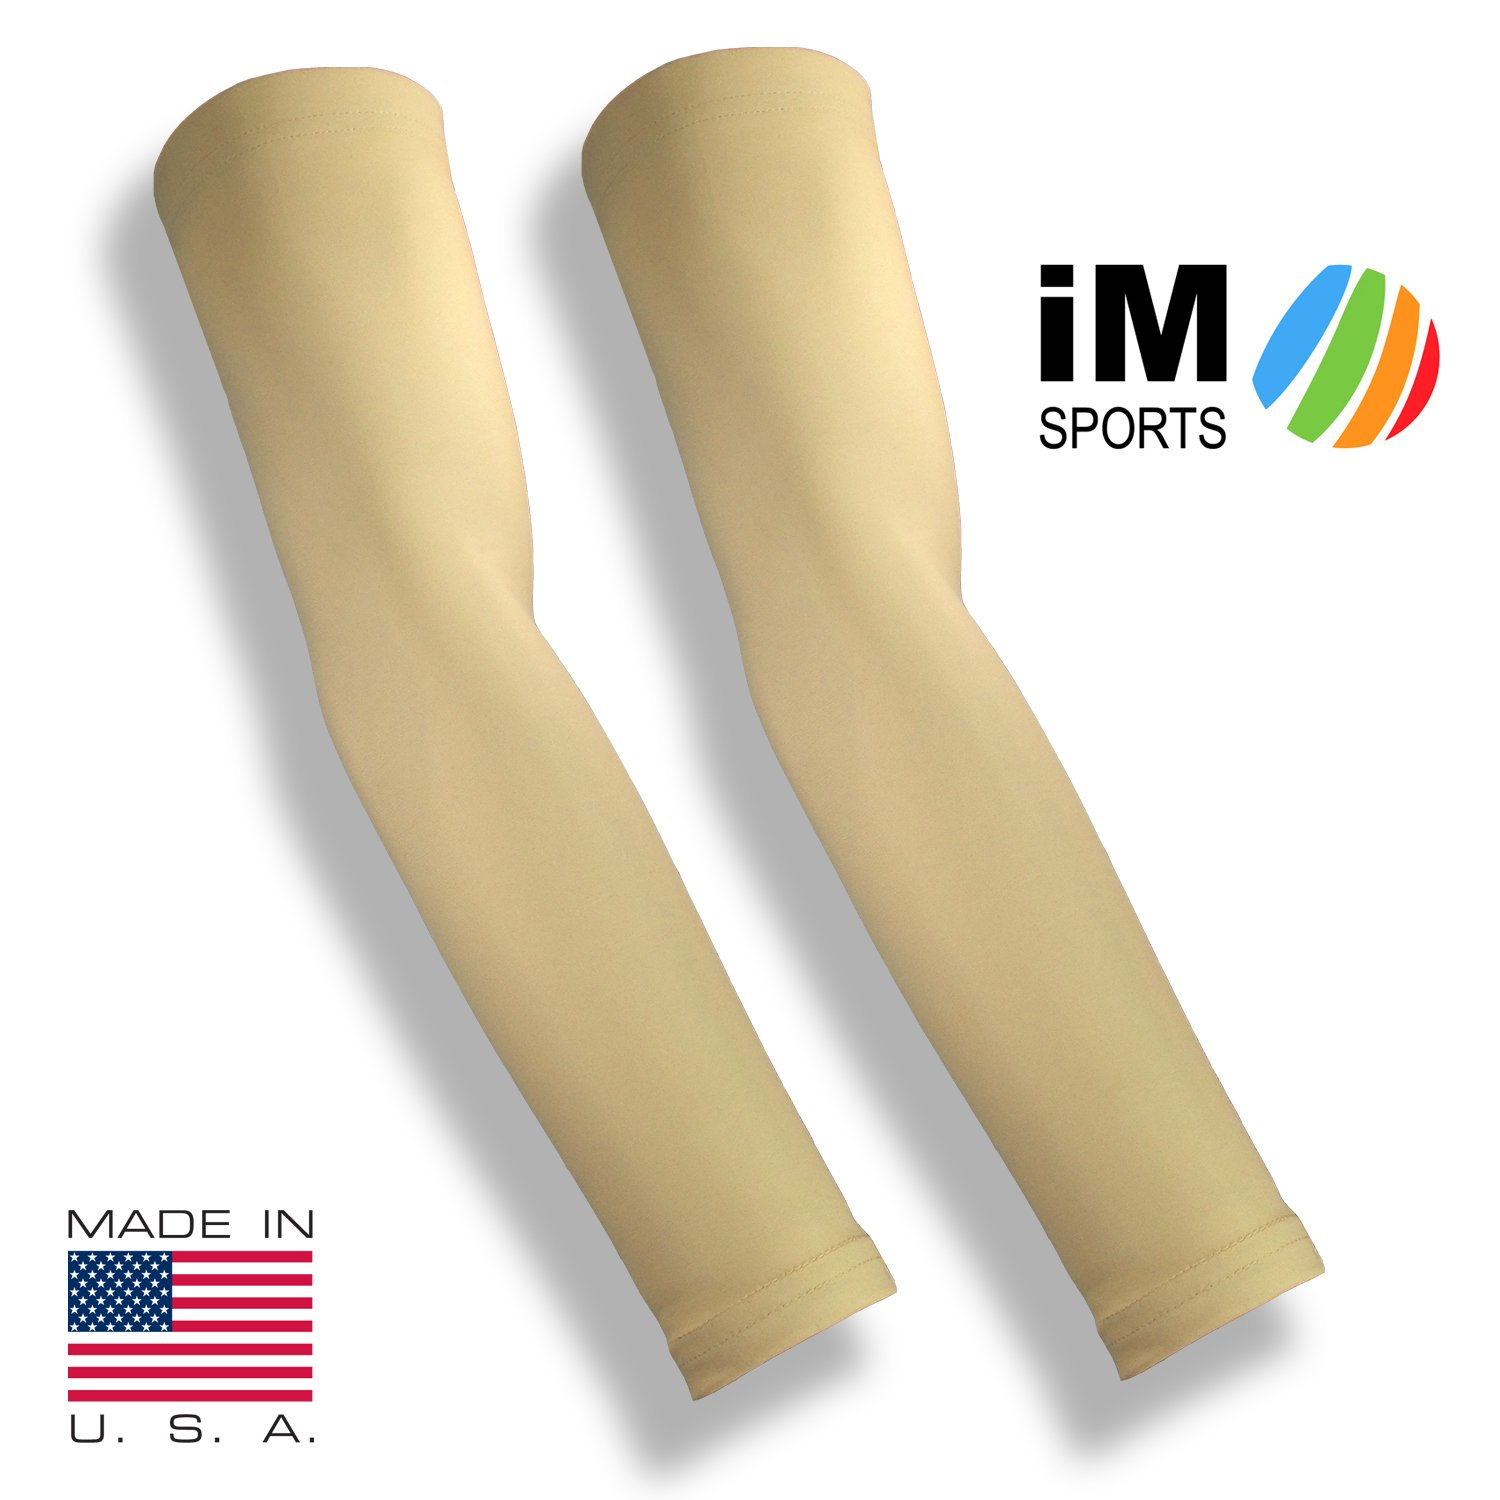 iM Sports SKINGUARDS Skin Protection Full Arm Sleeves + Protects Aging or Thin Skin + UV Protection - Unisex + Made in USA - Light - X-Large/XX-Large - Pair